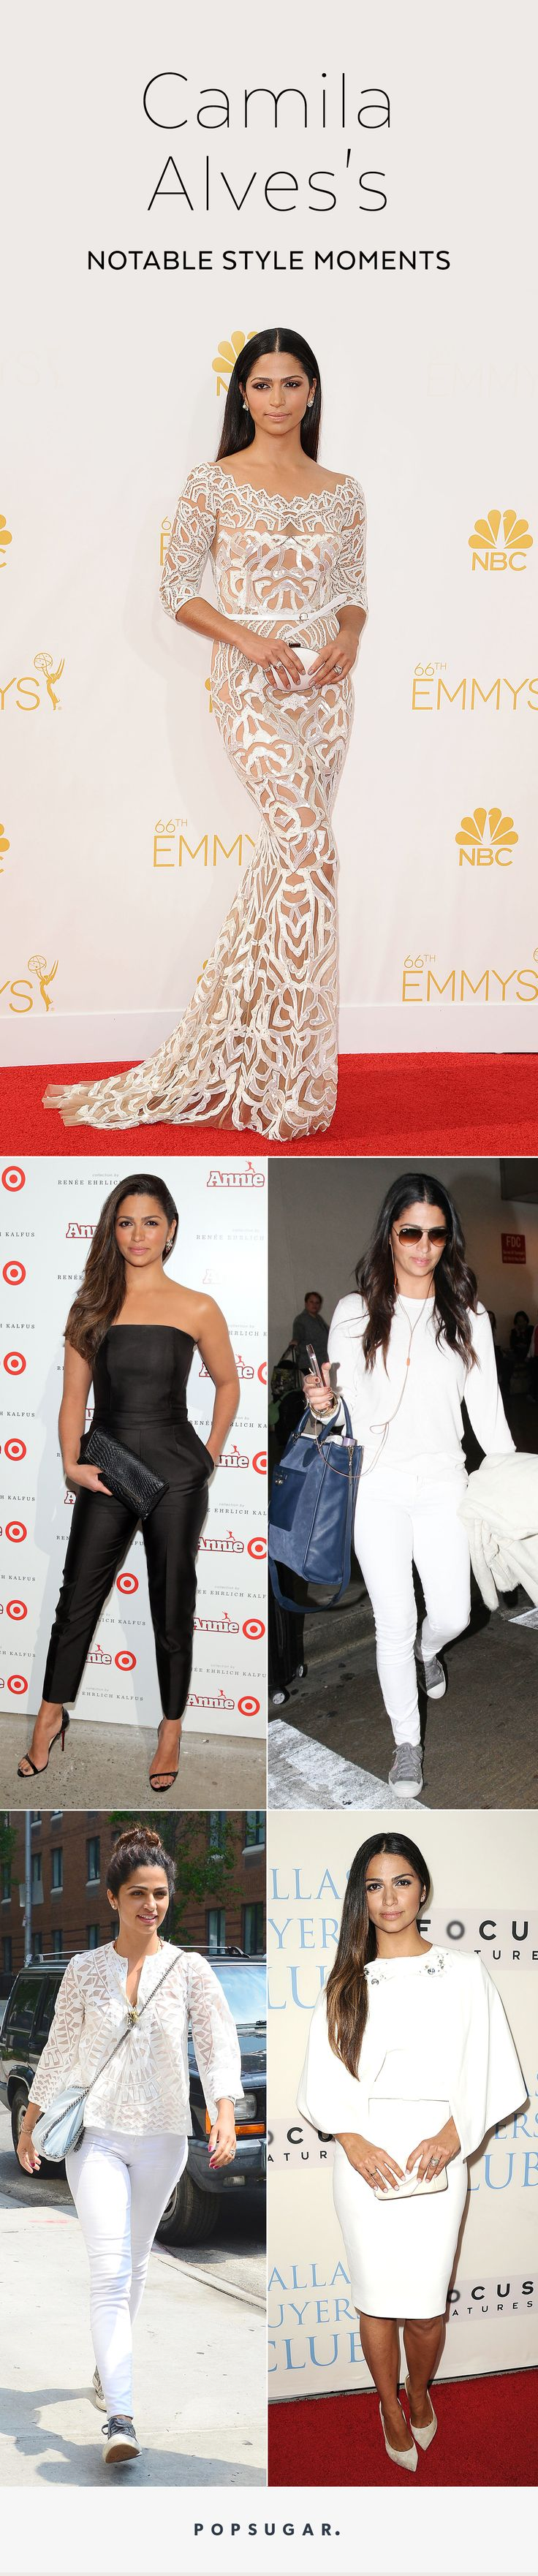 If the name Camila Alves doesn't already come to mind when you think of stylish celebs, one look at her best fashion choices will change that for good.